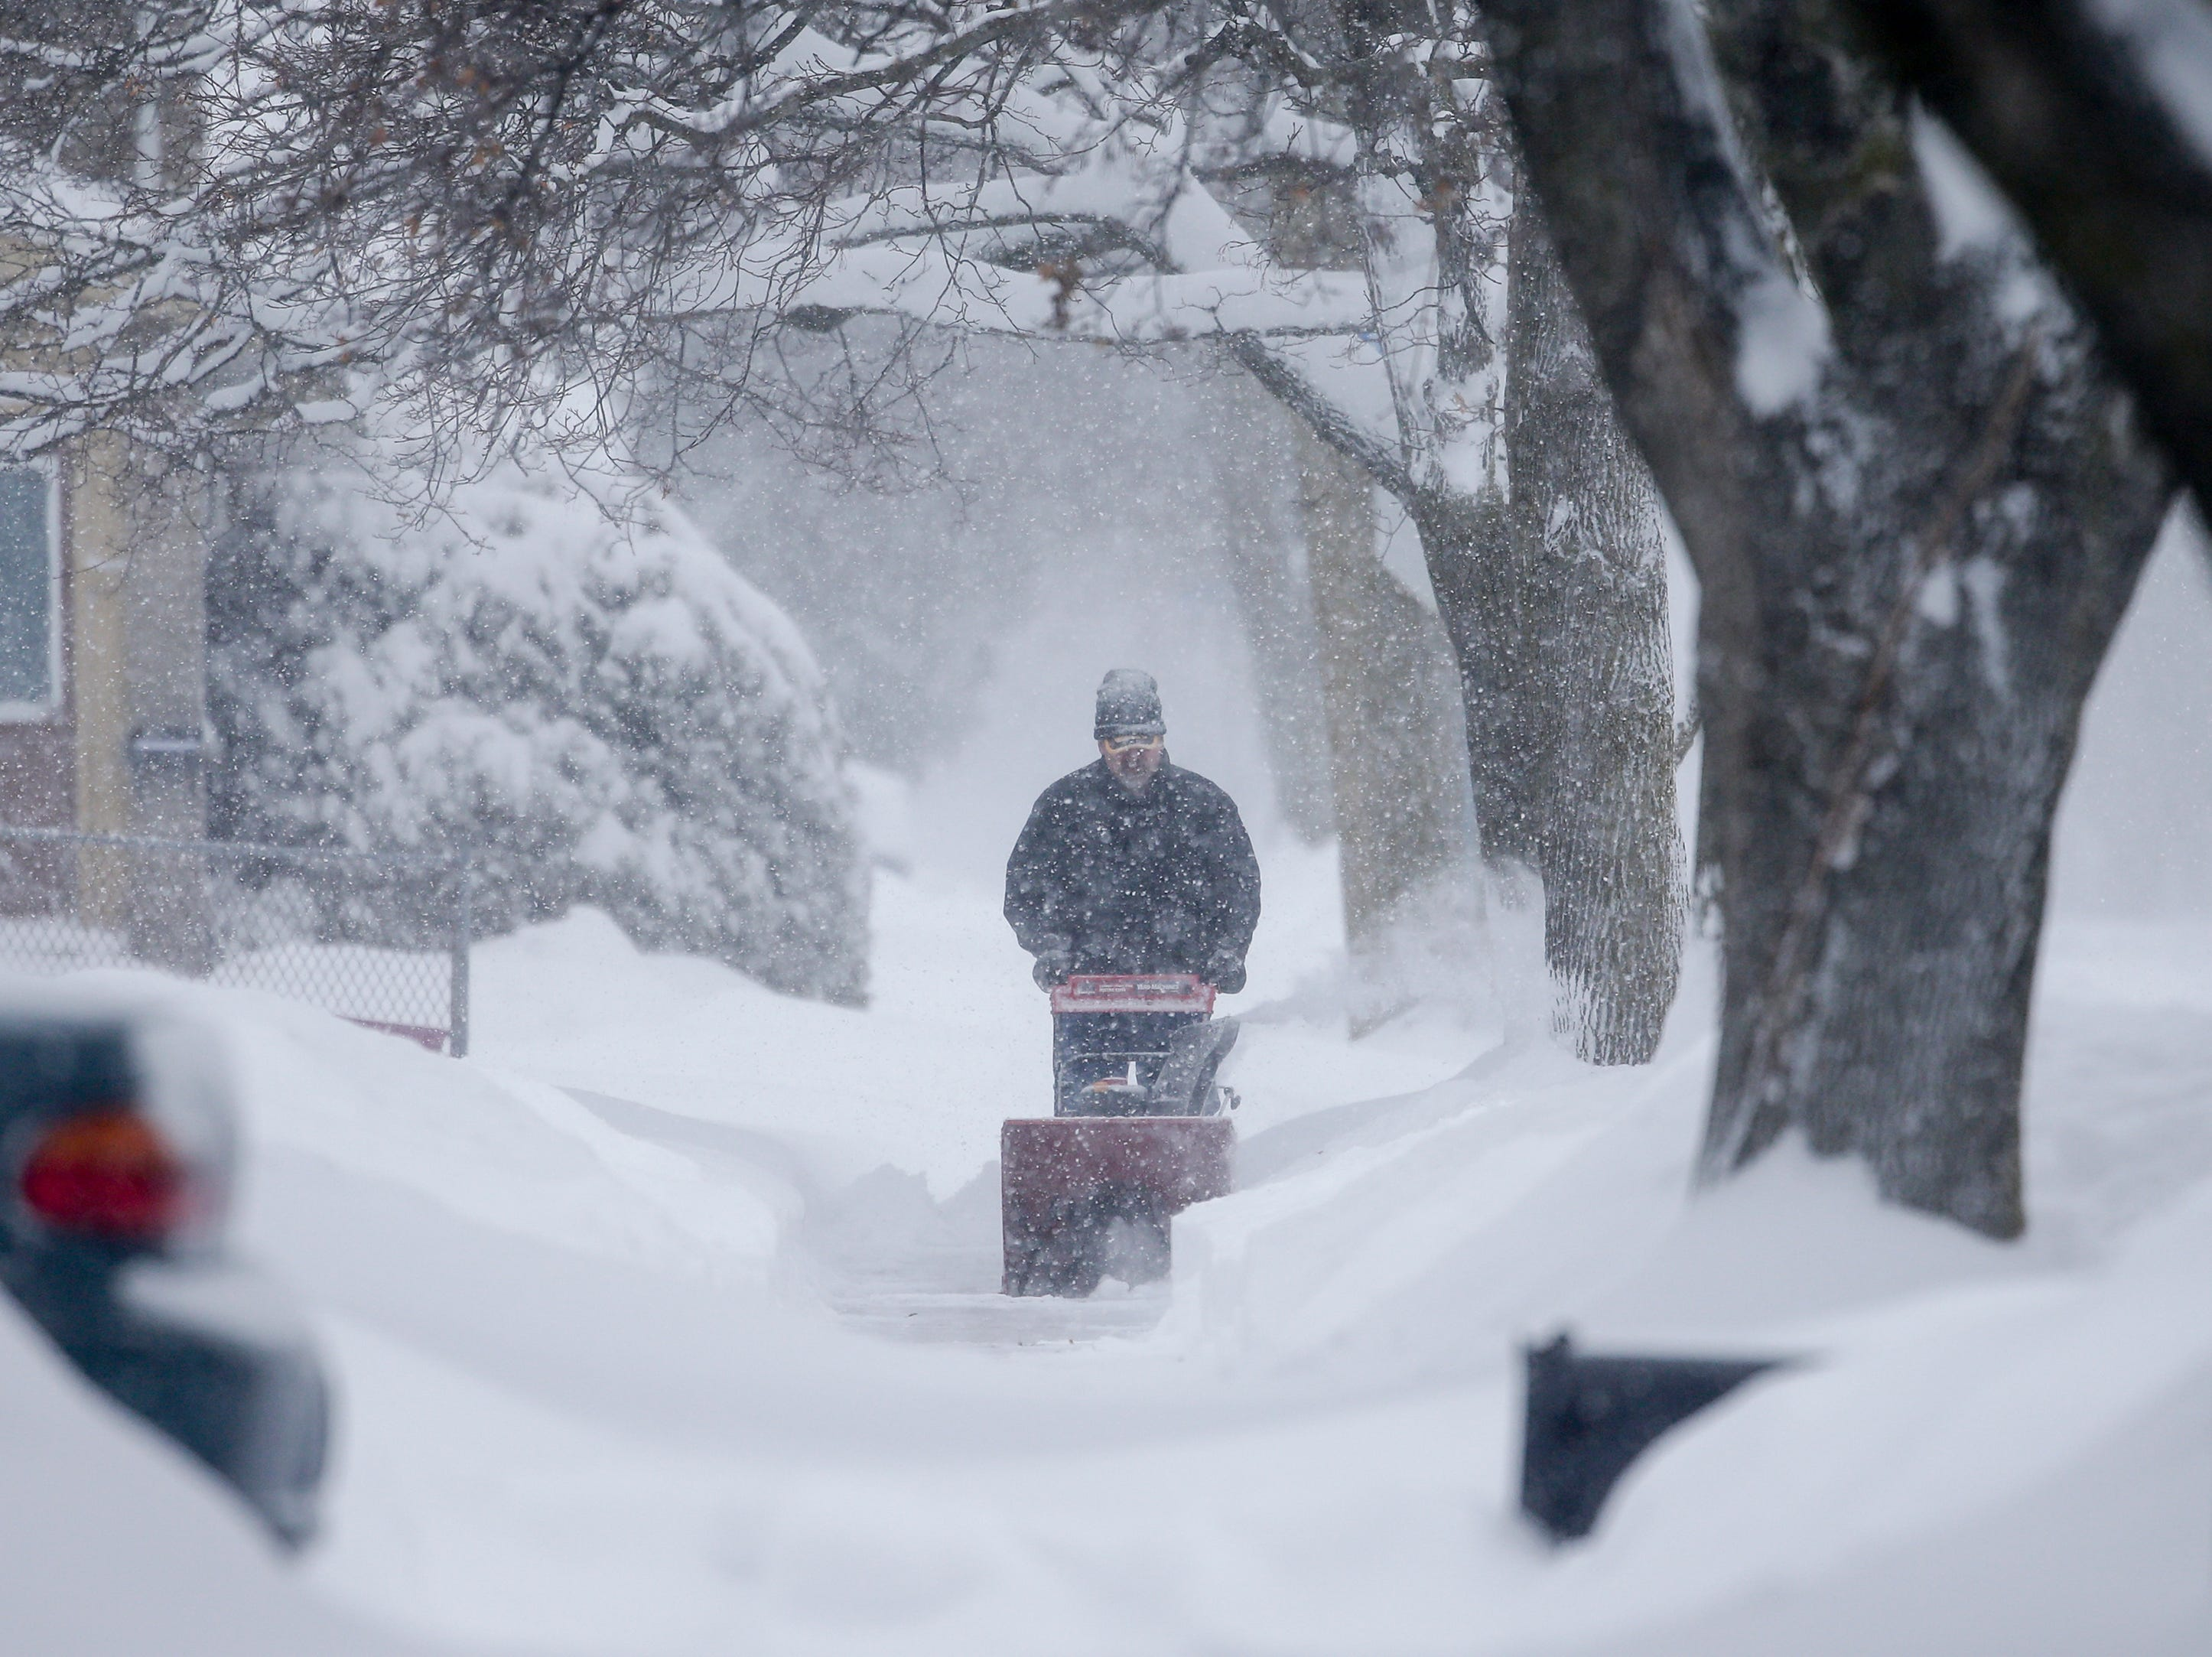 A Manitowoc resident snow blows the sidewalk as a snowstorm moves across the state Monday, Jan. 28, 2019, in Manitowoc, Wis.